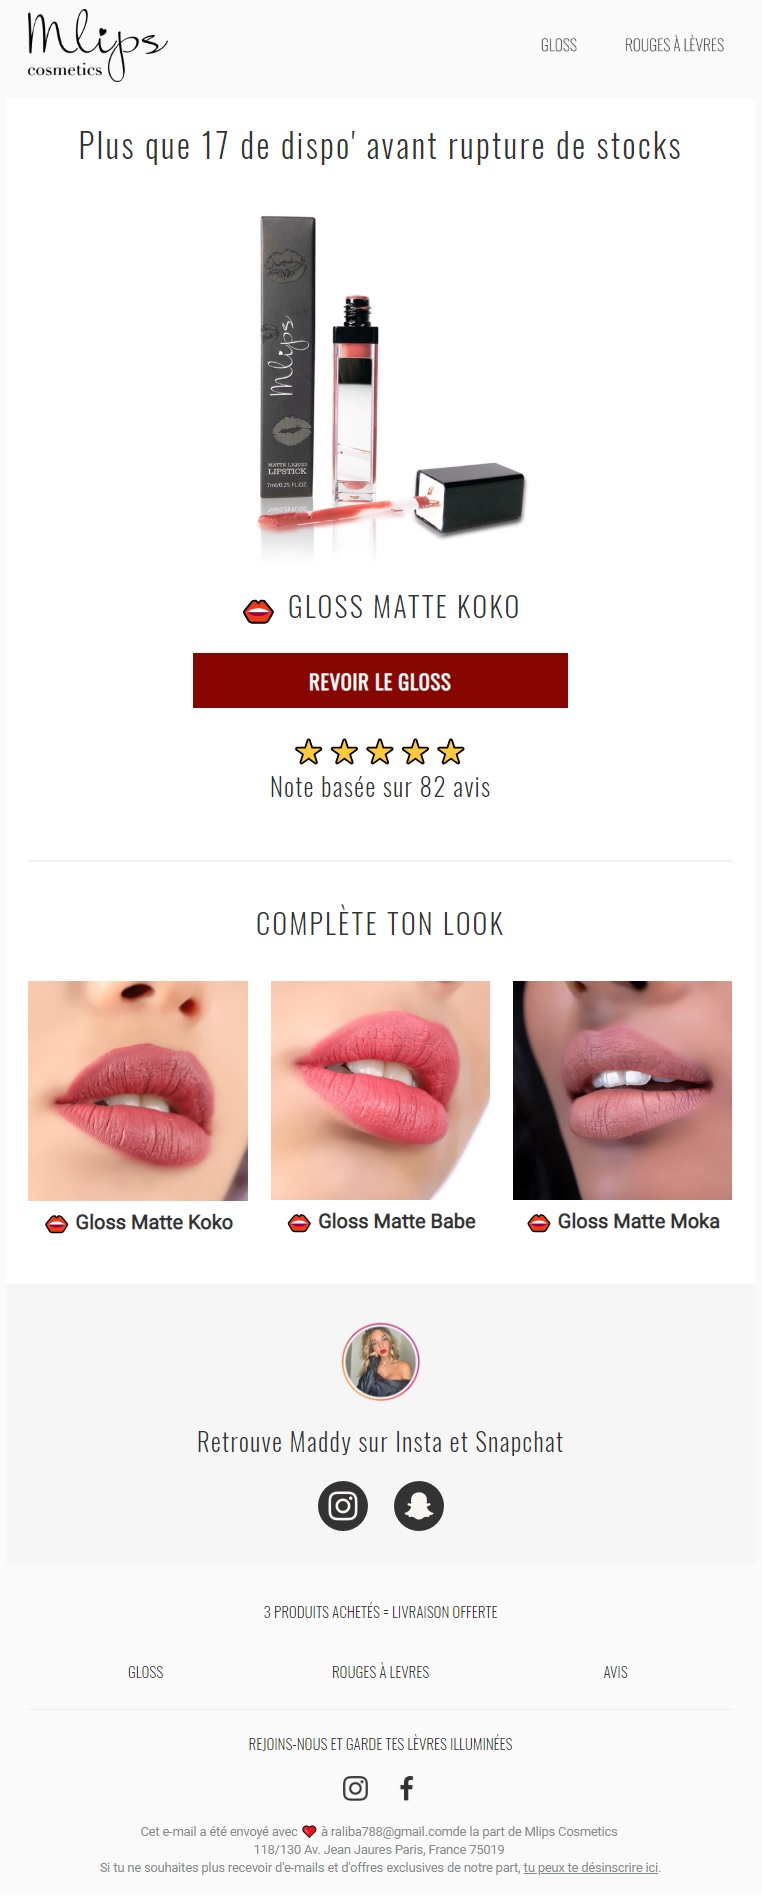 Browse Abandonment email from Mlips Cosmetics